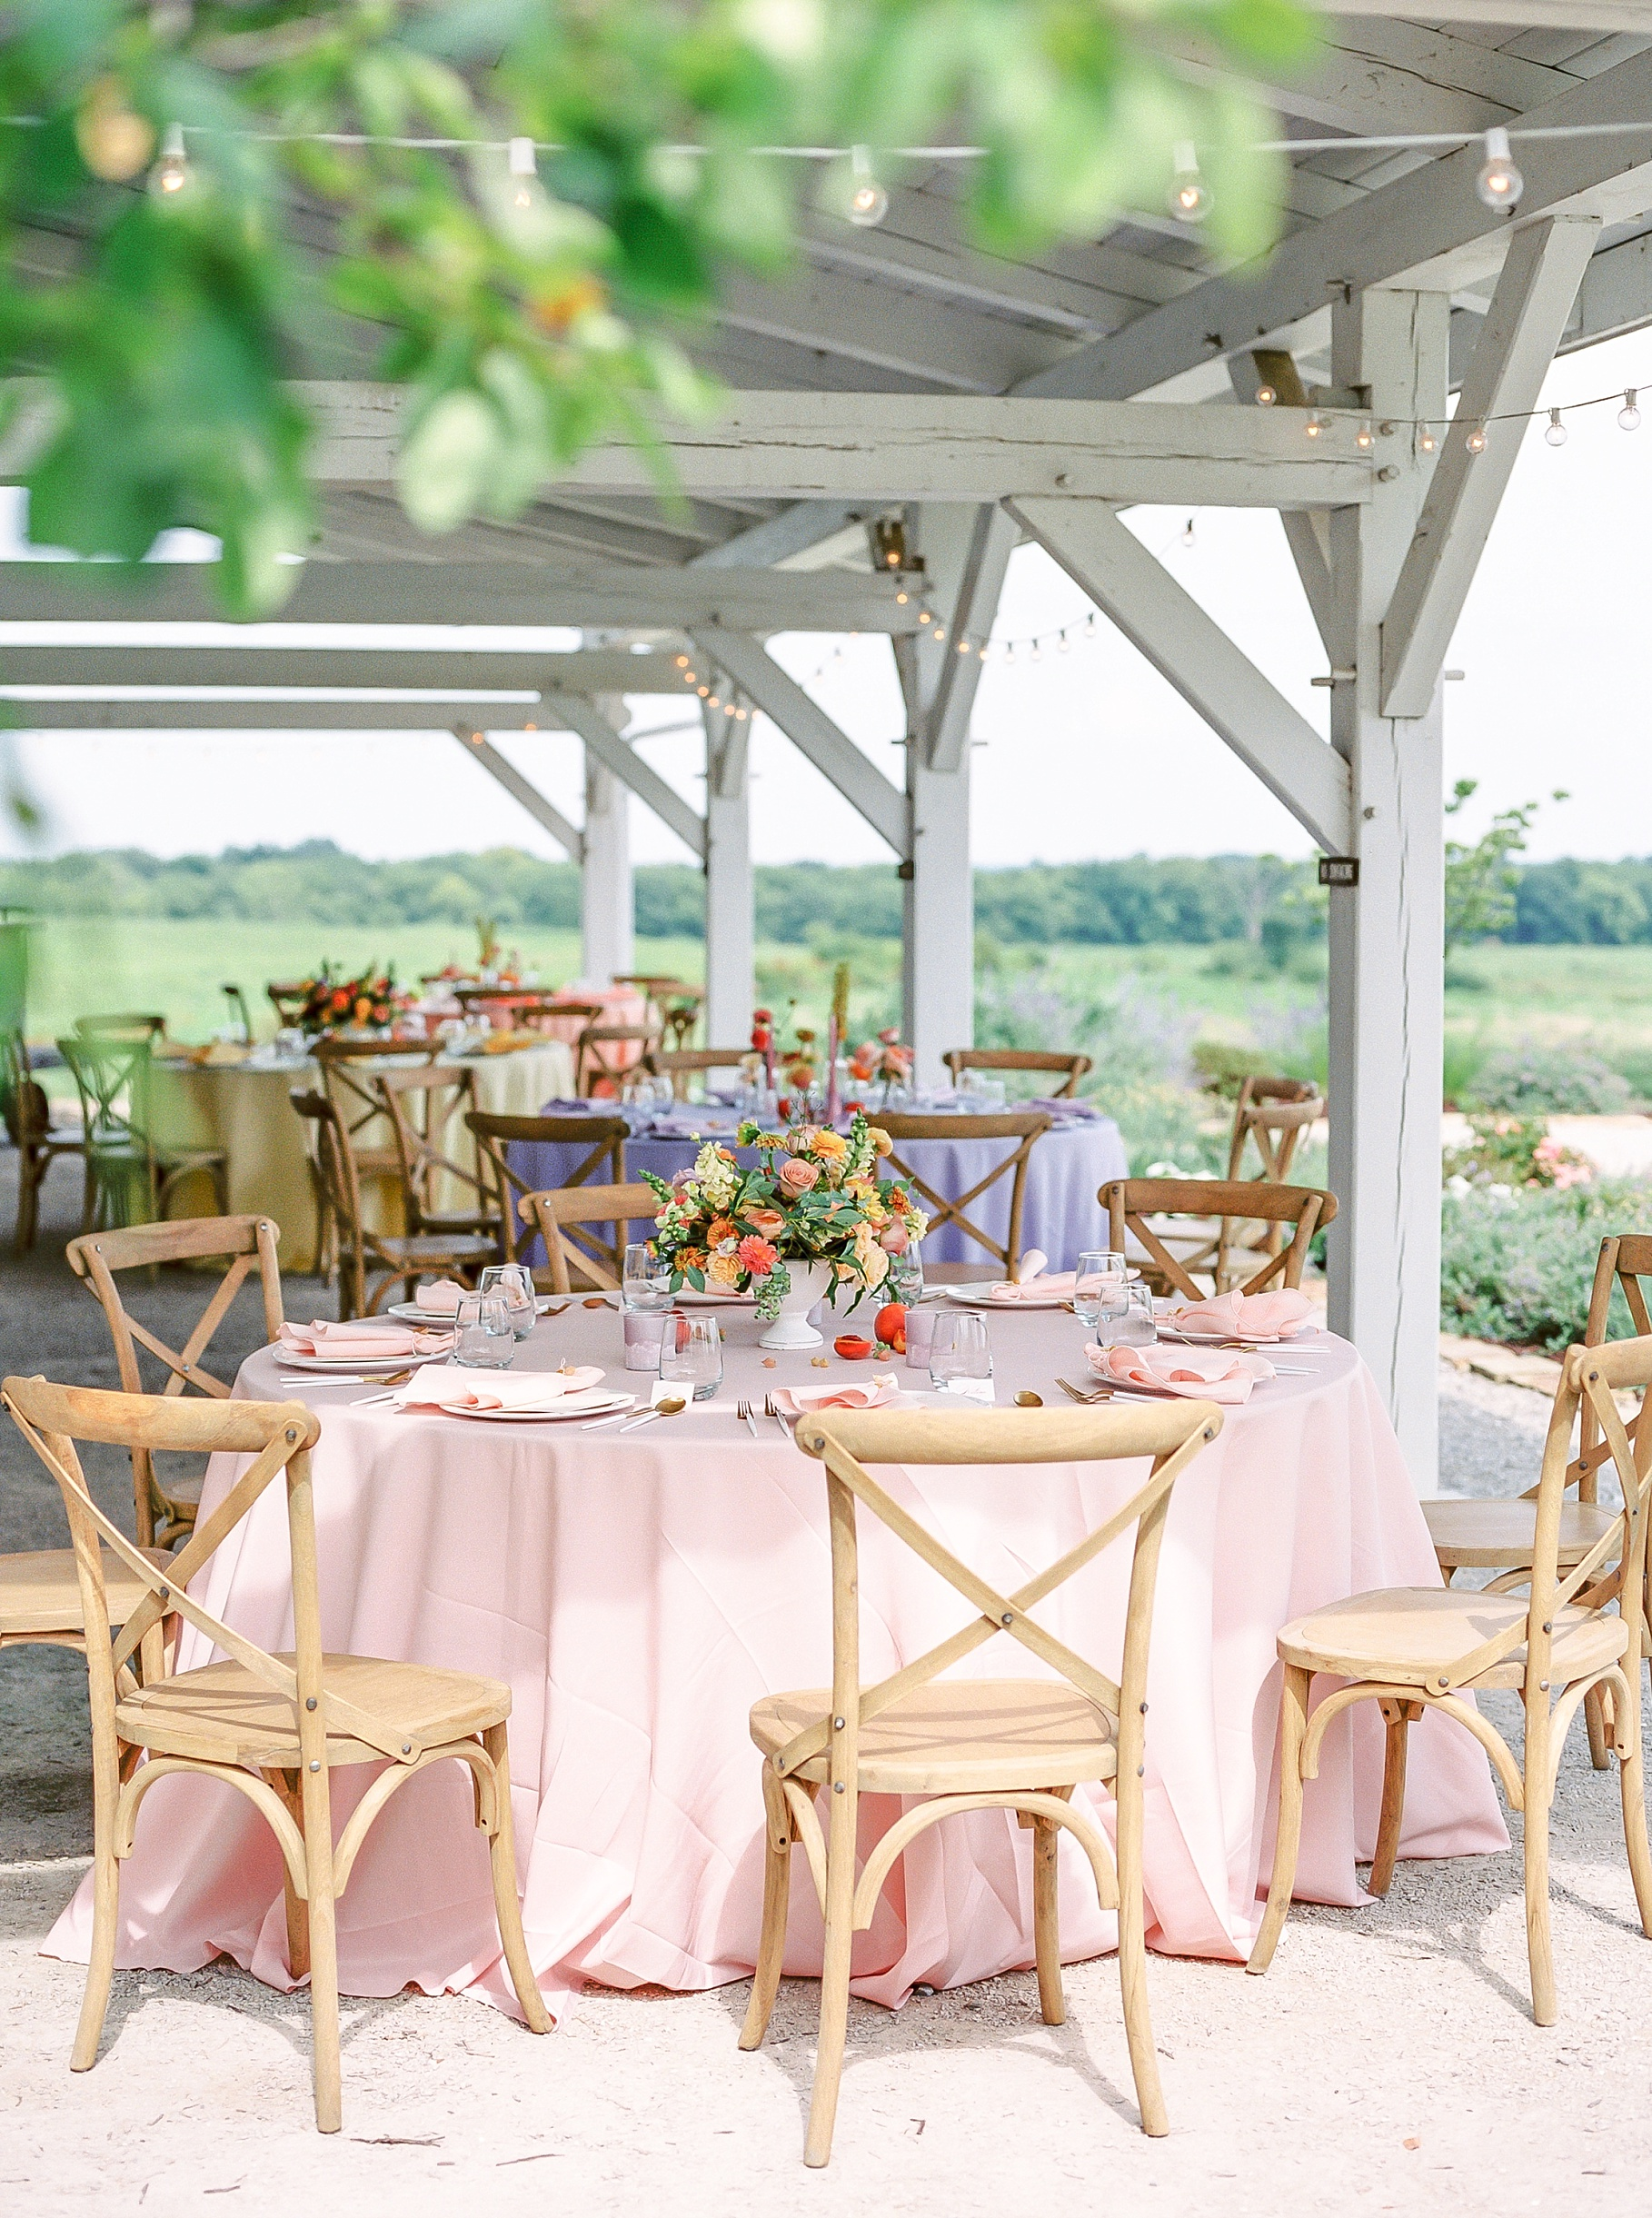 Late Summer Wedding With Pastel Toned Soiree at Blue Bell Farm by Kelsi Kliethermes Photography Best Columbia Missouri Wedding Photographer_0078.jpg